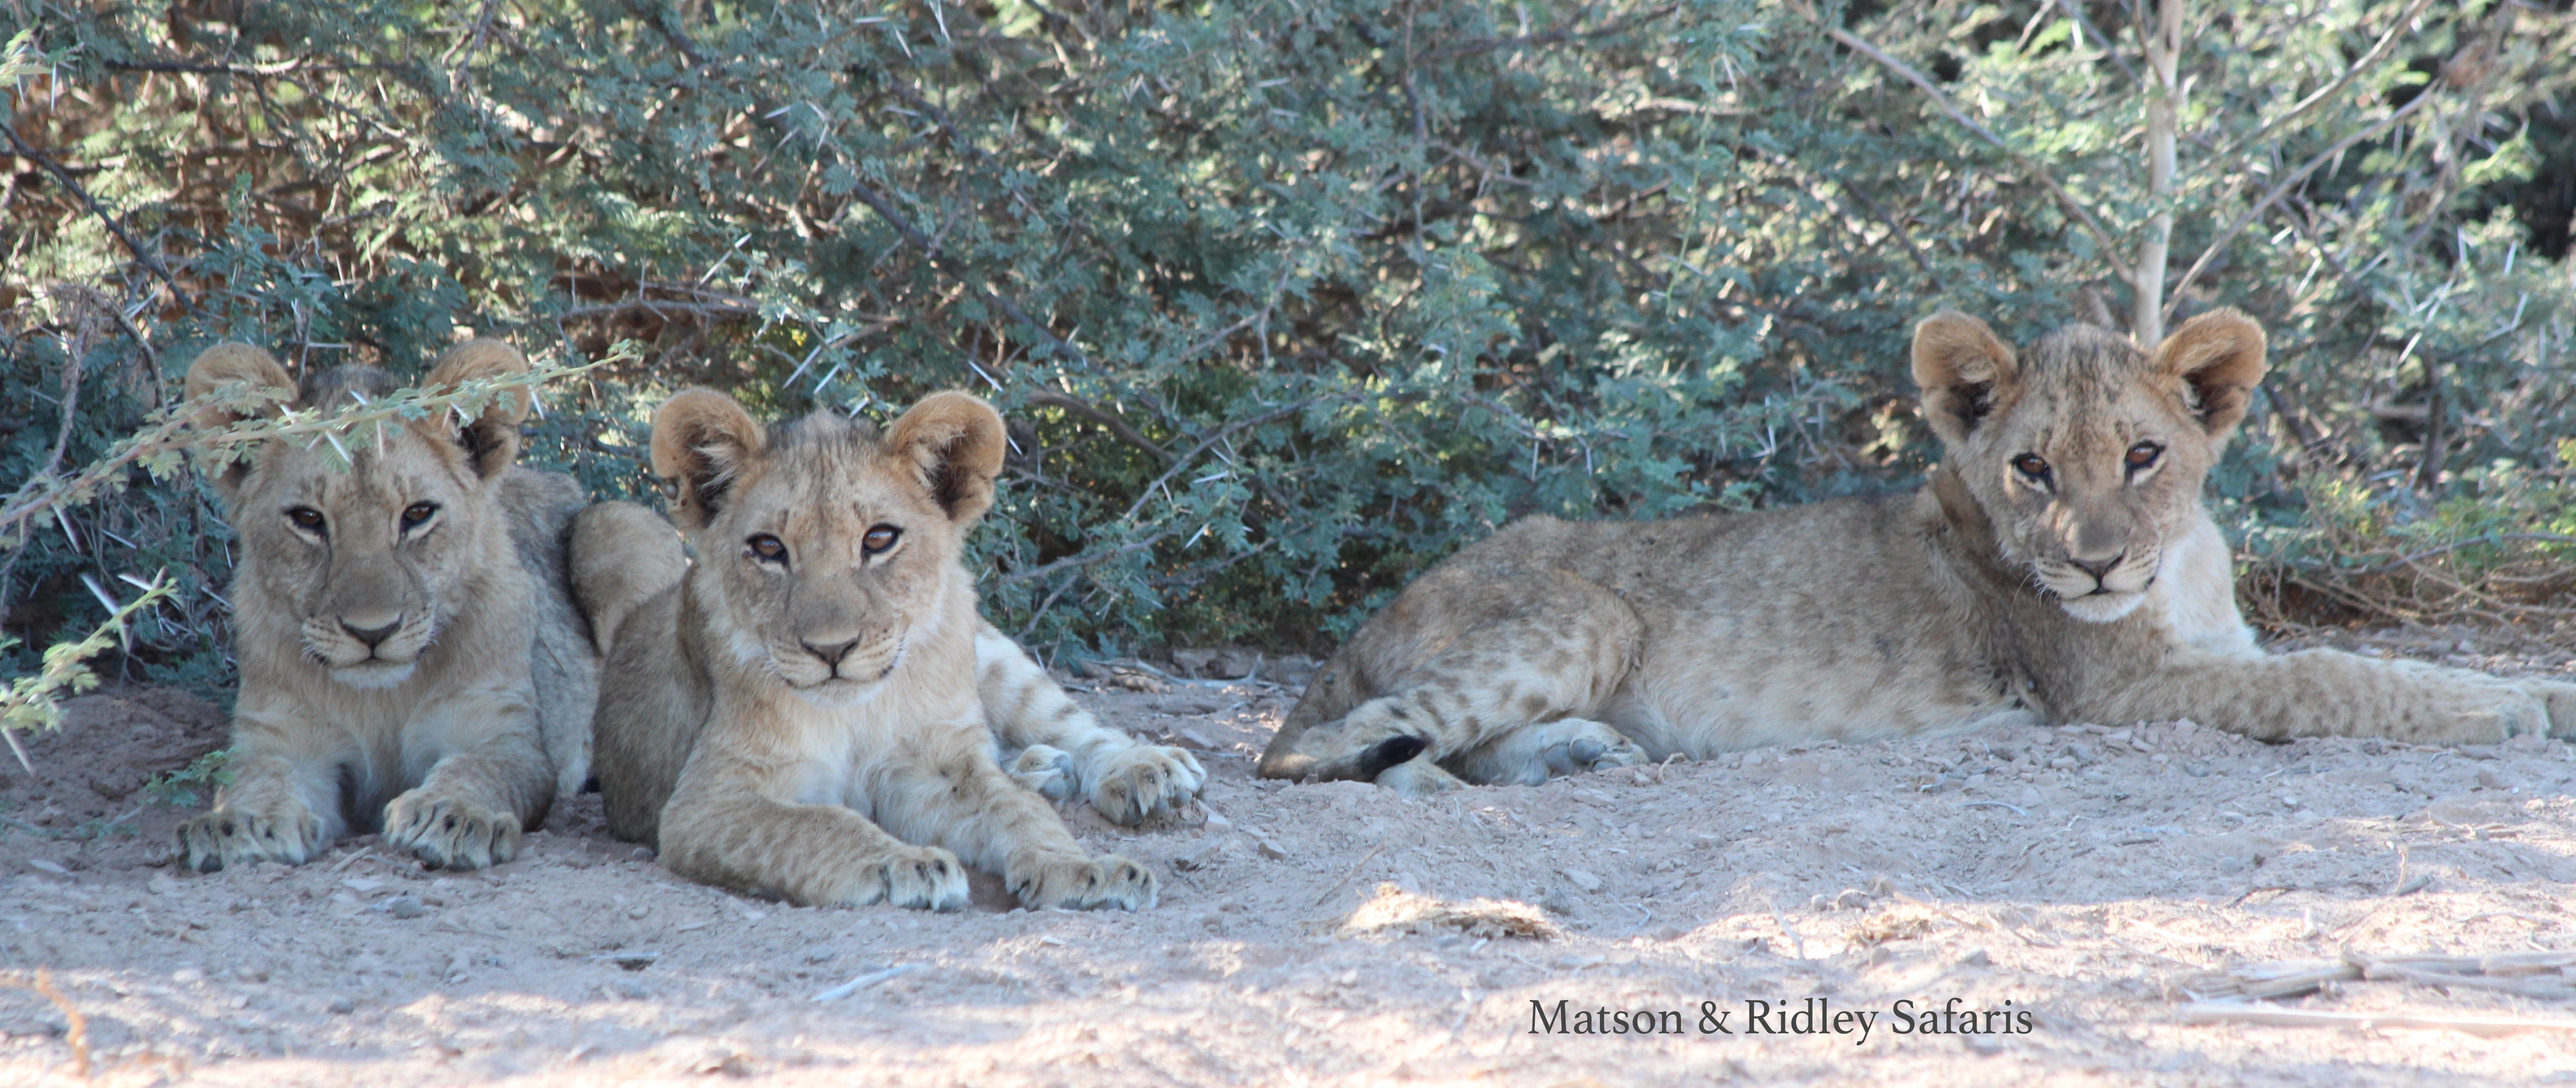 Lion cubs - the next generation of desert-dwelling lions